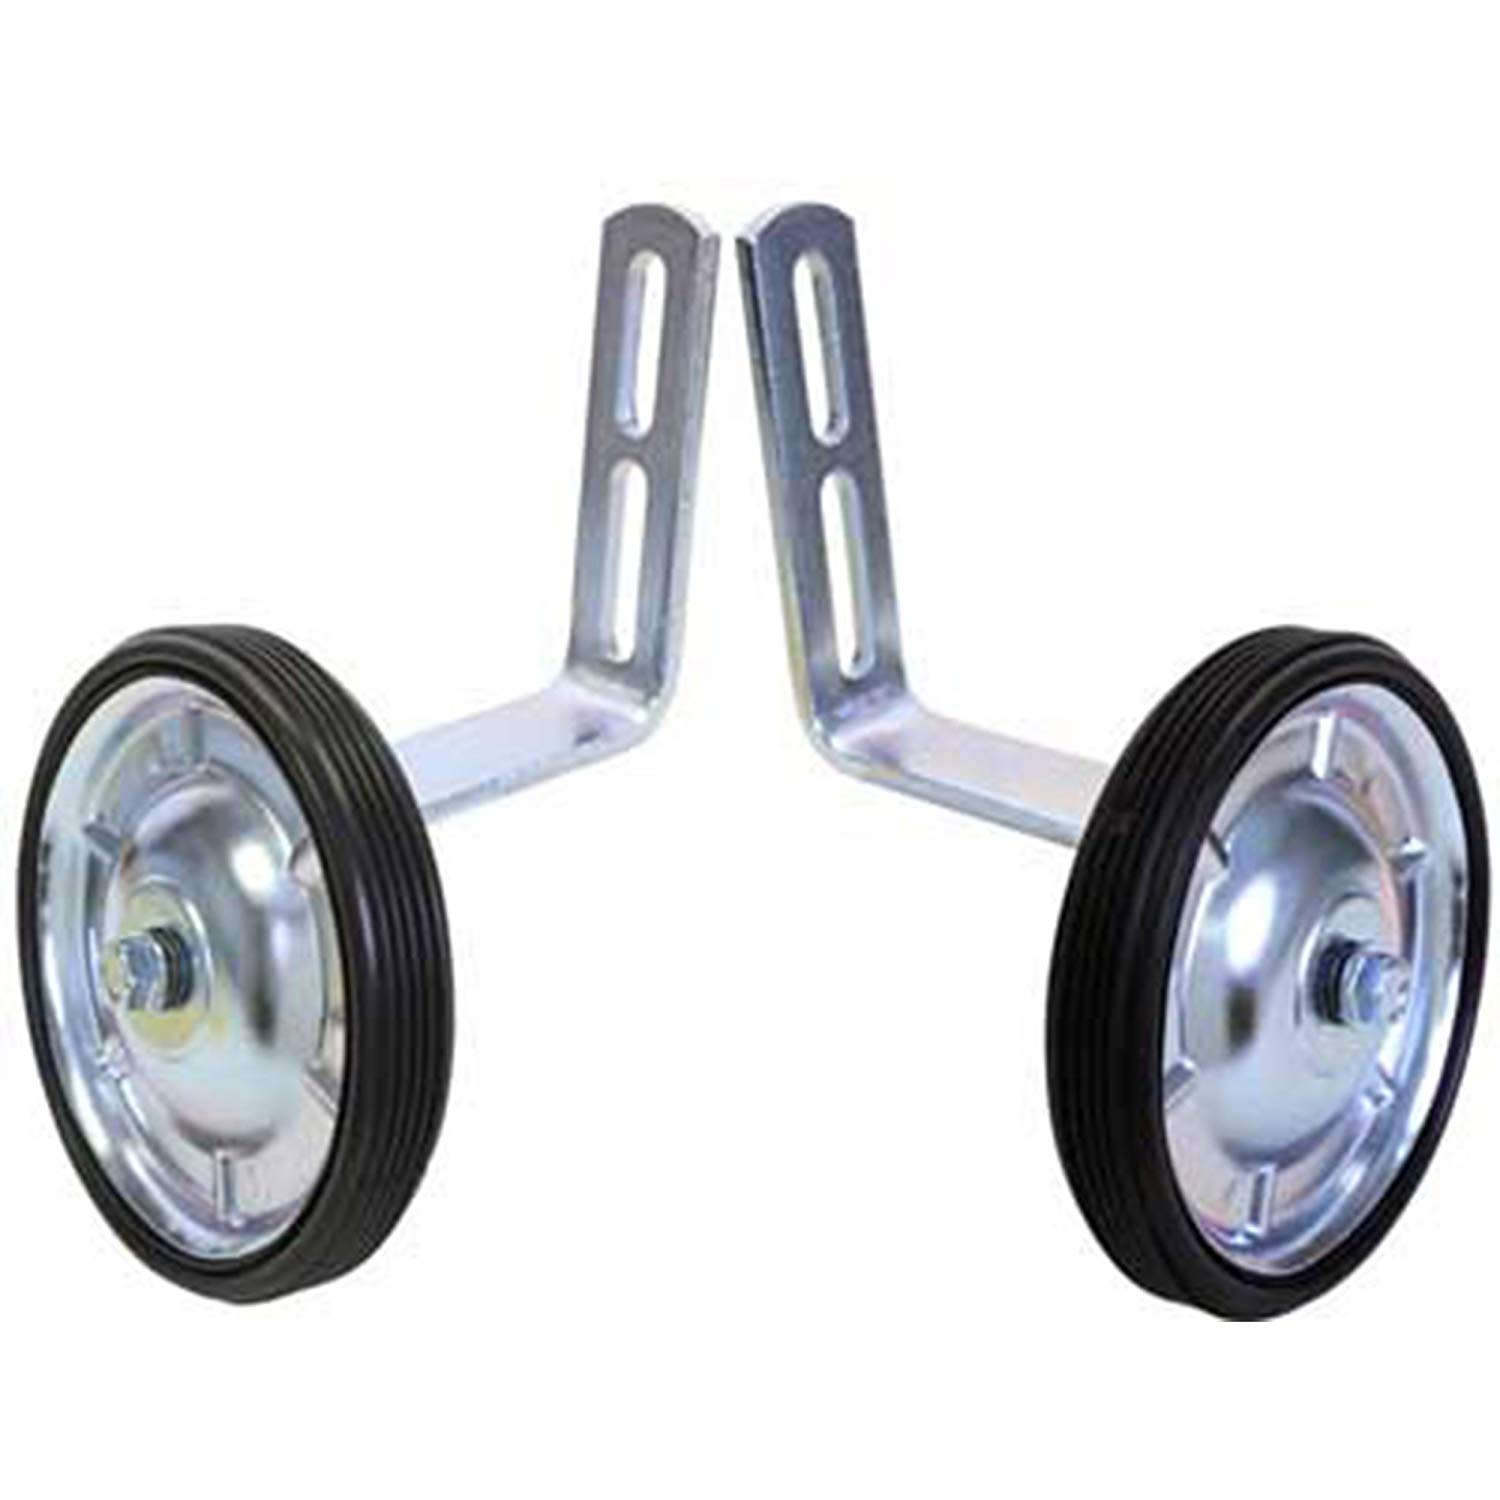 Wald 1216 Bicycle Training Wheels (12 to 16-Inch Wheels) by Wald